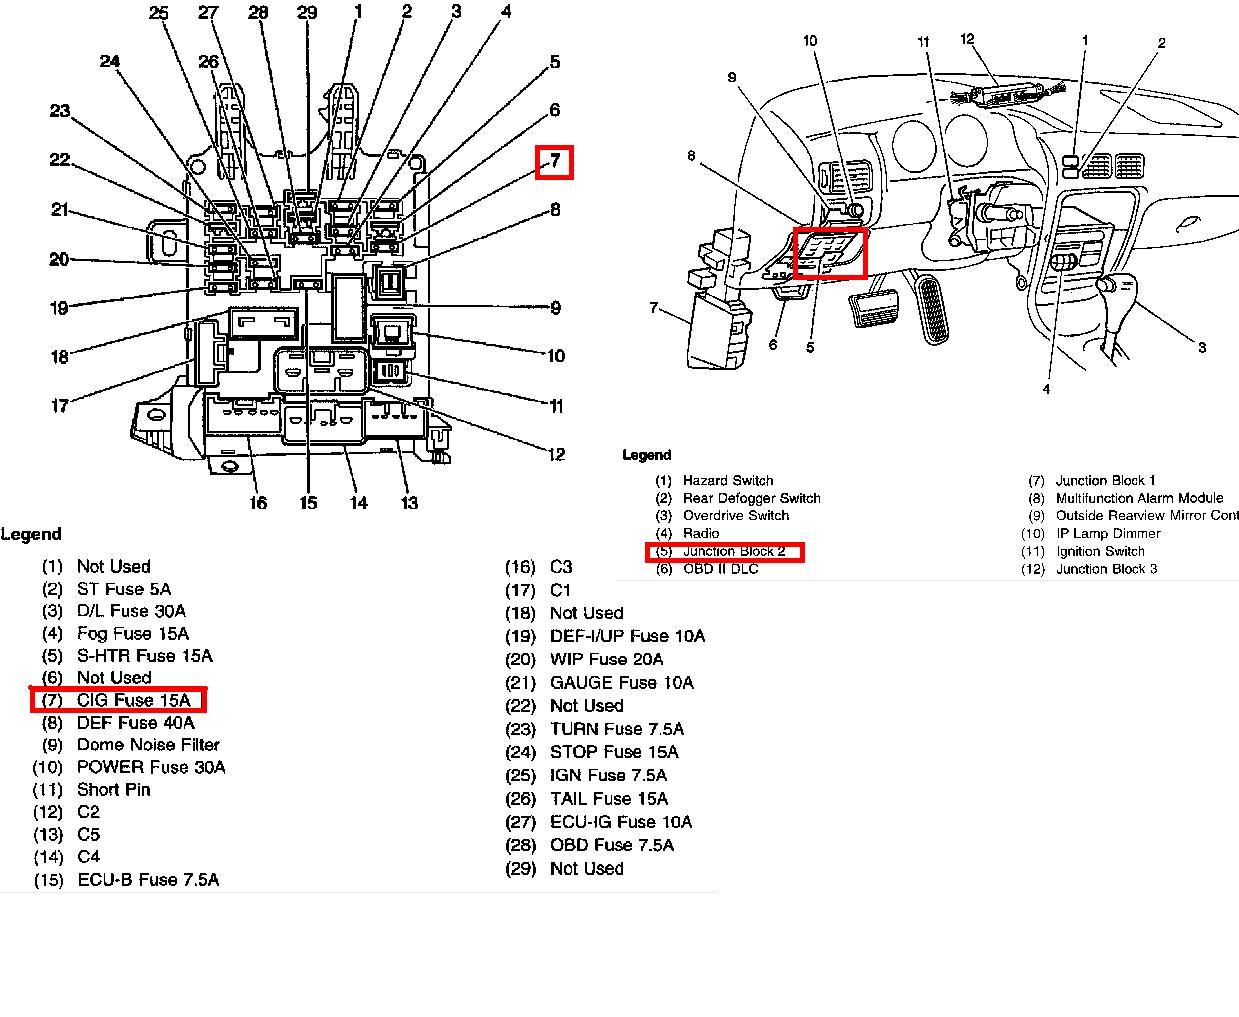 2000 chevrolet prizm fuse box diagram  chevrolet  auto